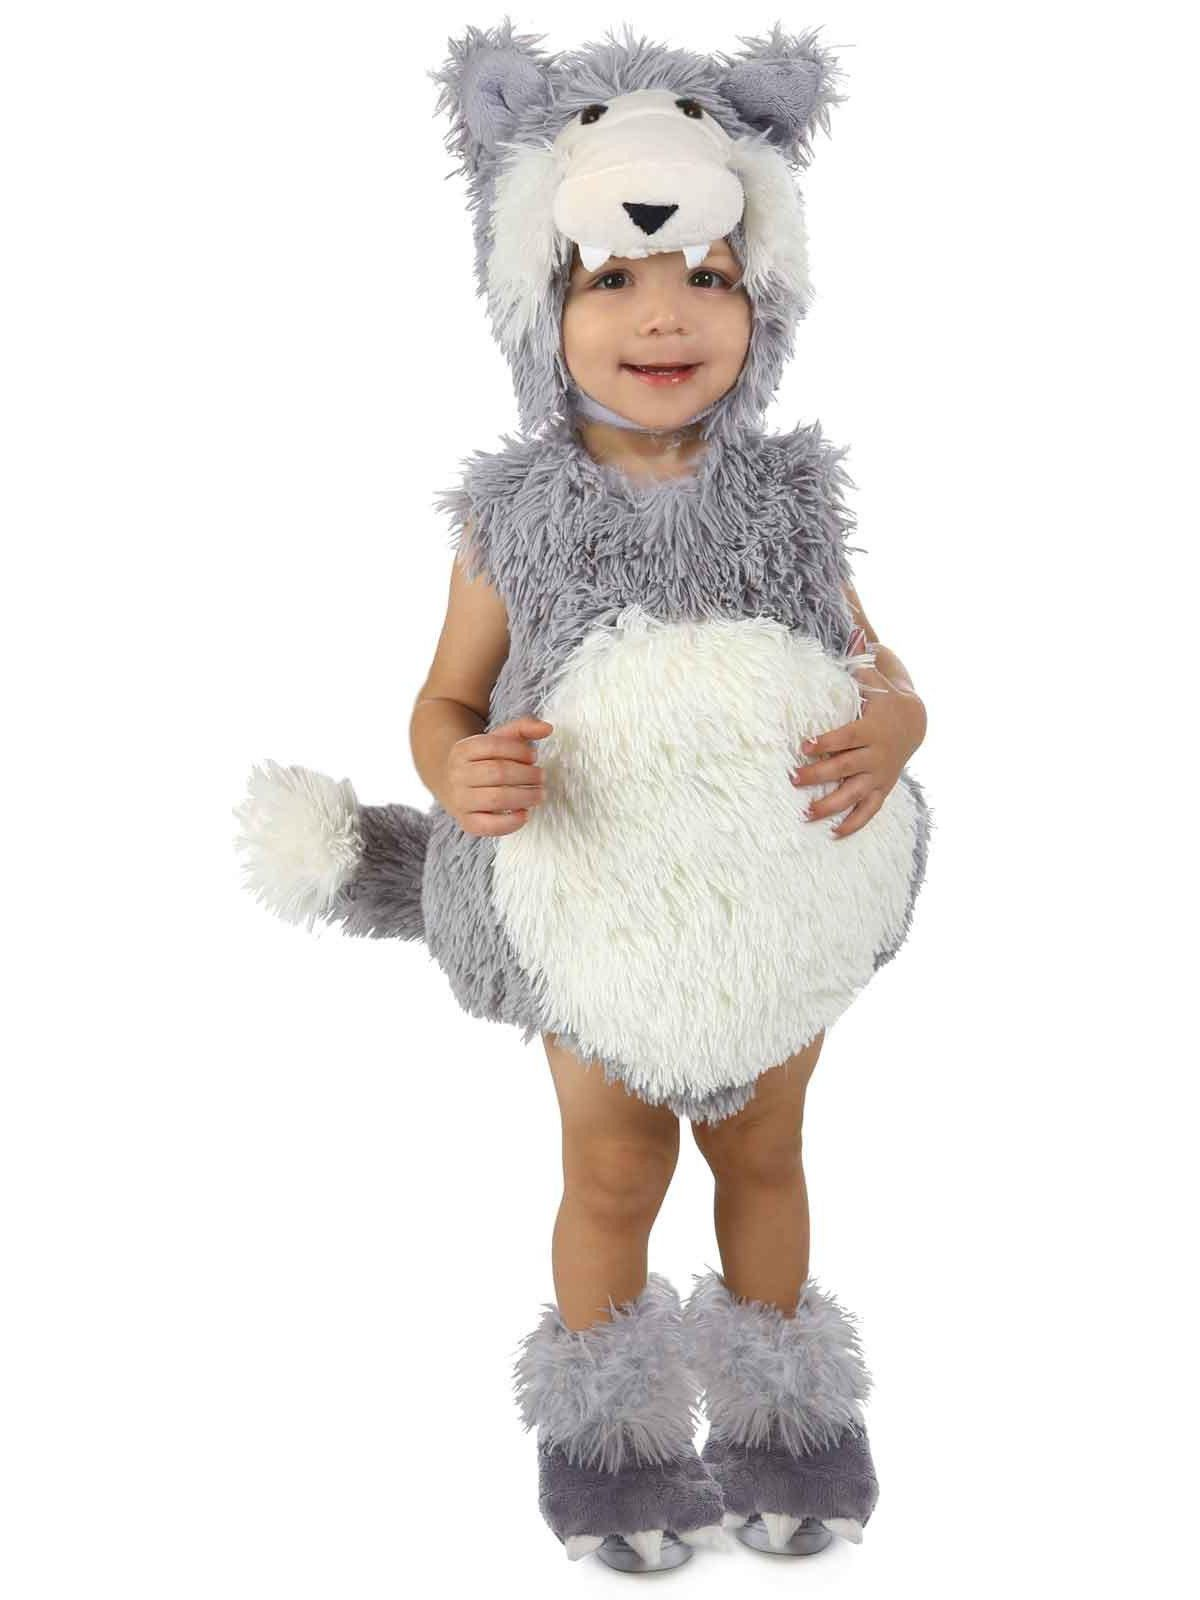 Vintage Big Bad Wolf Infant/Toddler Costume - Baby Halloween Costumes | BuyCostumes.com  sc 1 st  BuyCostumes.com & Vintage Big Bad Wolf Infant/Toddler Costume - Baby Halloween ...